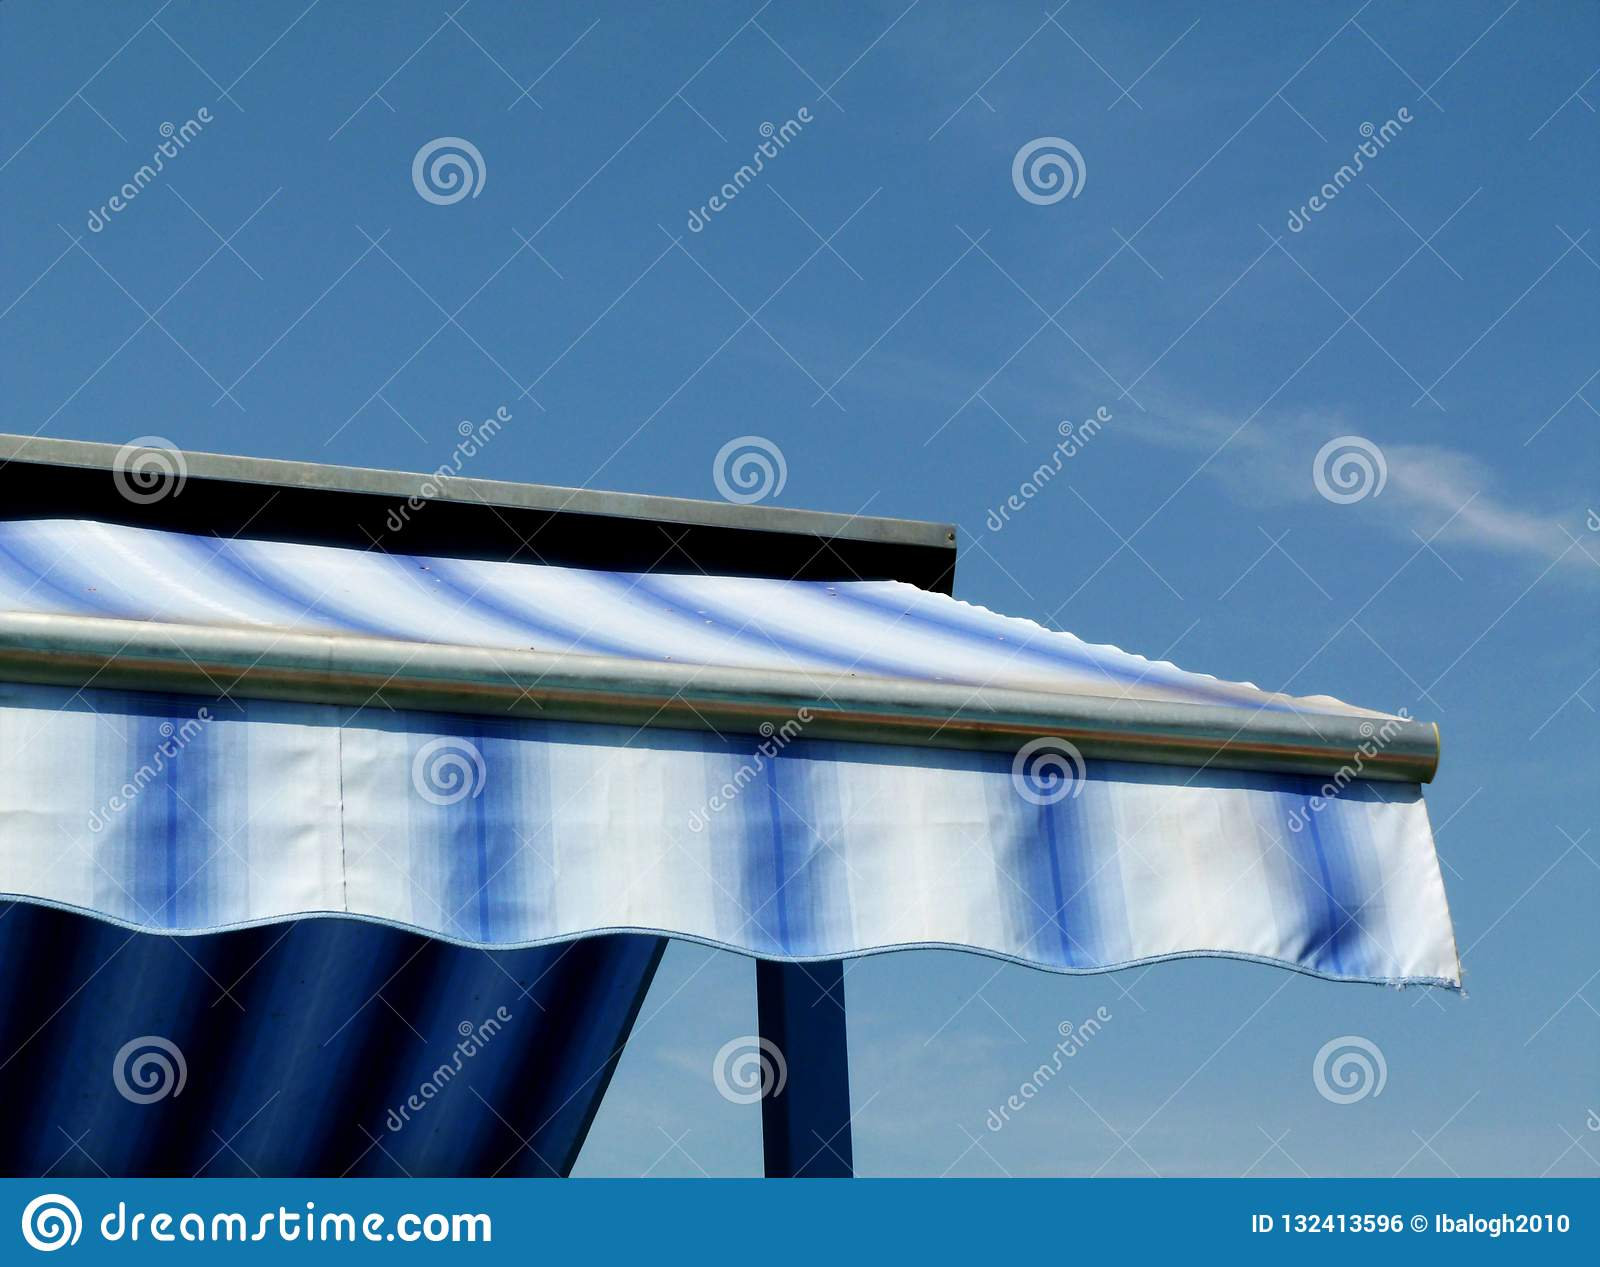 Blue and white canvas awning under blue sky